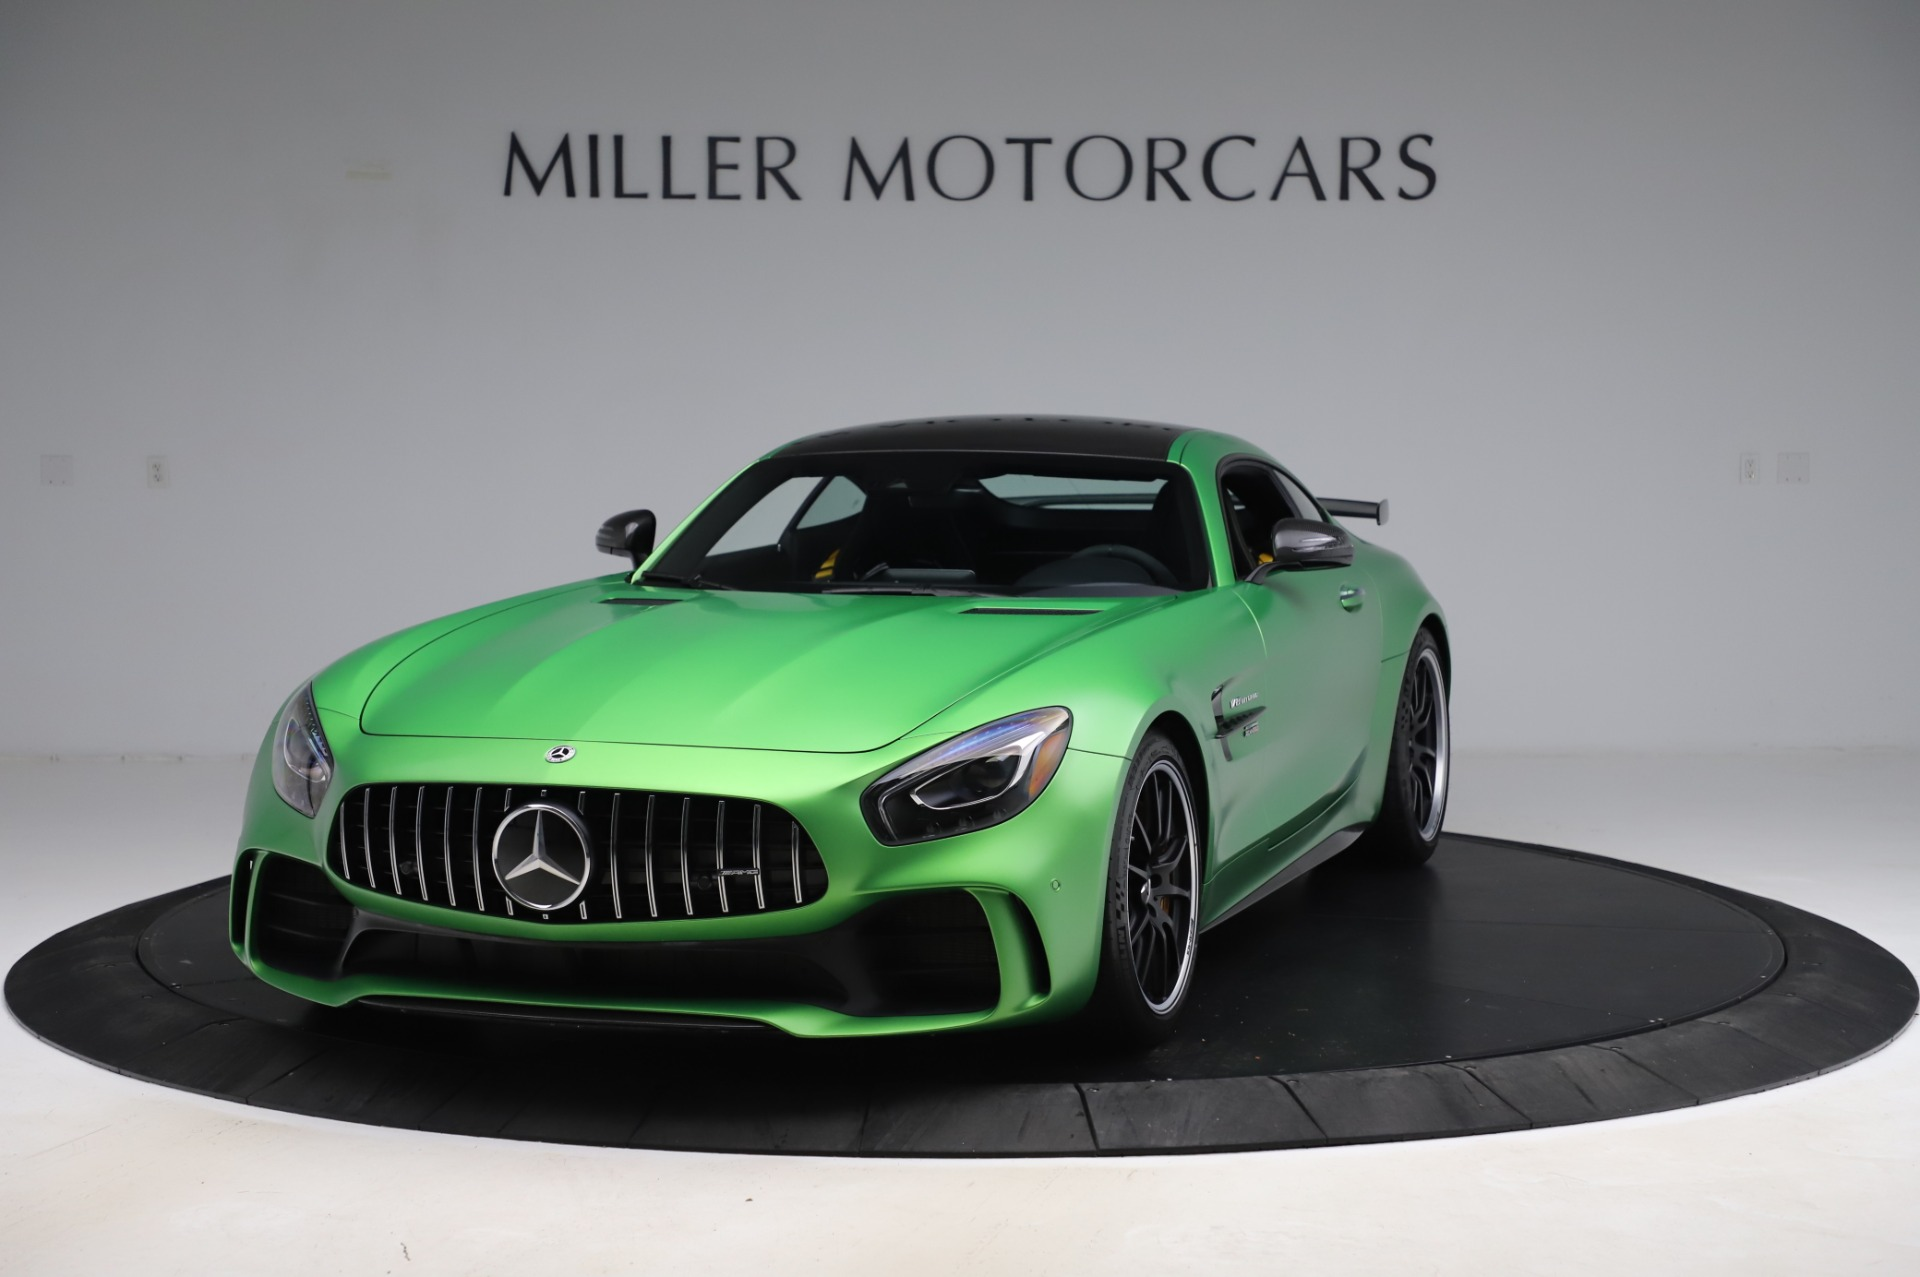 Used 2019 Mercedes-Benz AMG GT R for sale $155,900 at Bentley Greenwich in Greenwich CT 06830 1